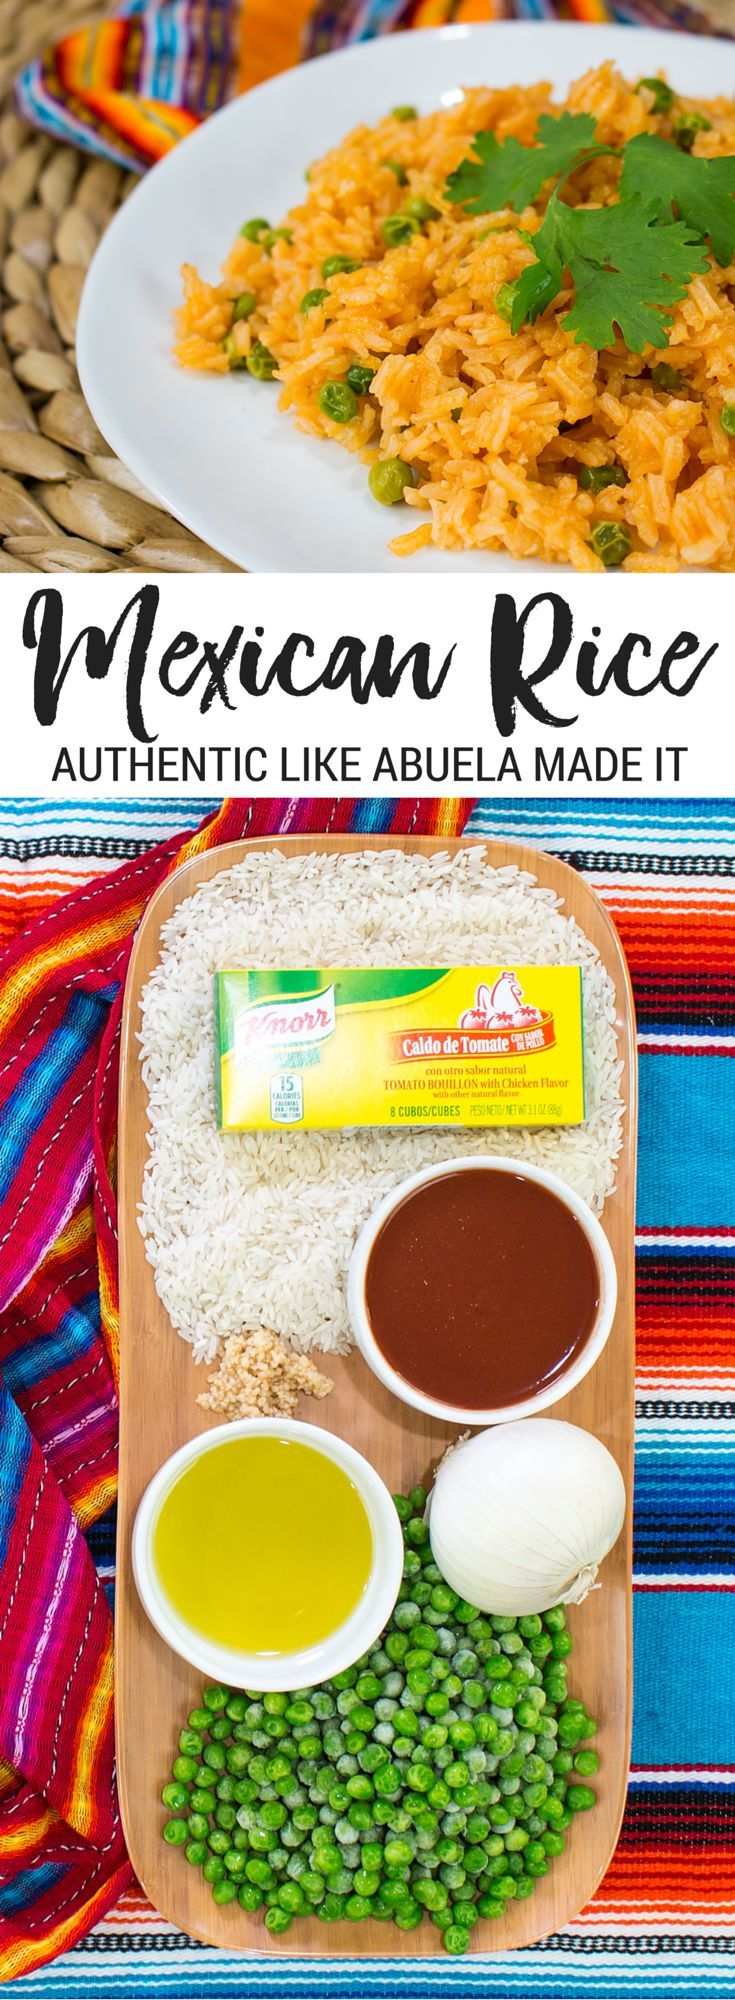 Make this easy, flavorful Arroz Rojo recipe using Knorr Bouillon. Get the full recipe and see the tutorial video for the best Mexican Rice recipe. made in partnership with Knorr and Walmart by Jennifer Priest. #SaboreaTuVerano